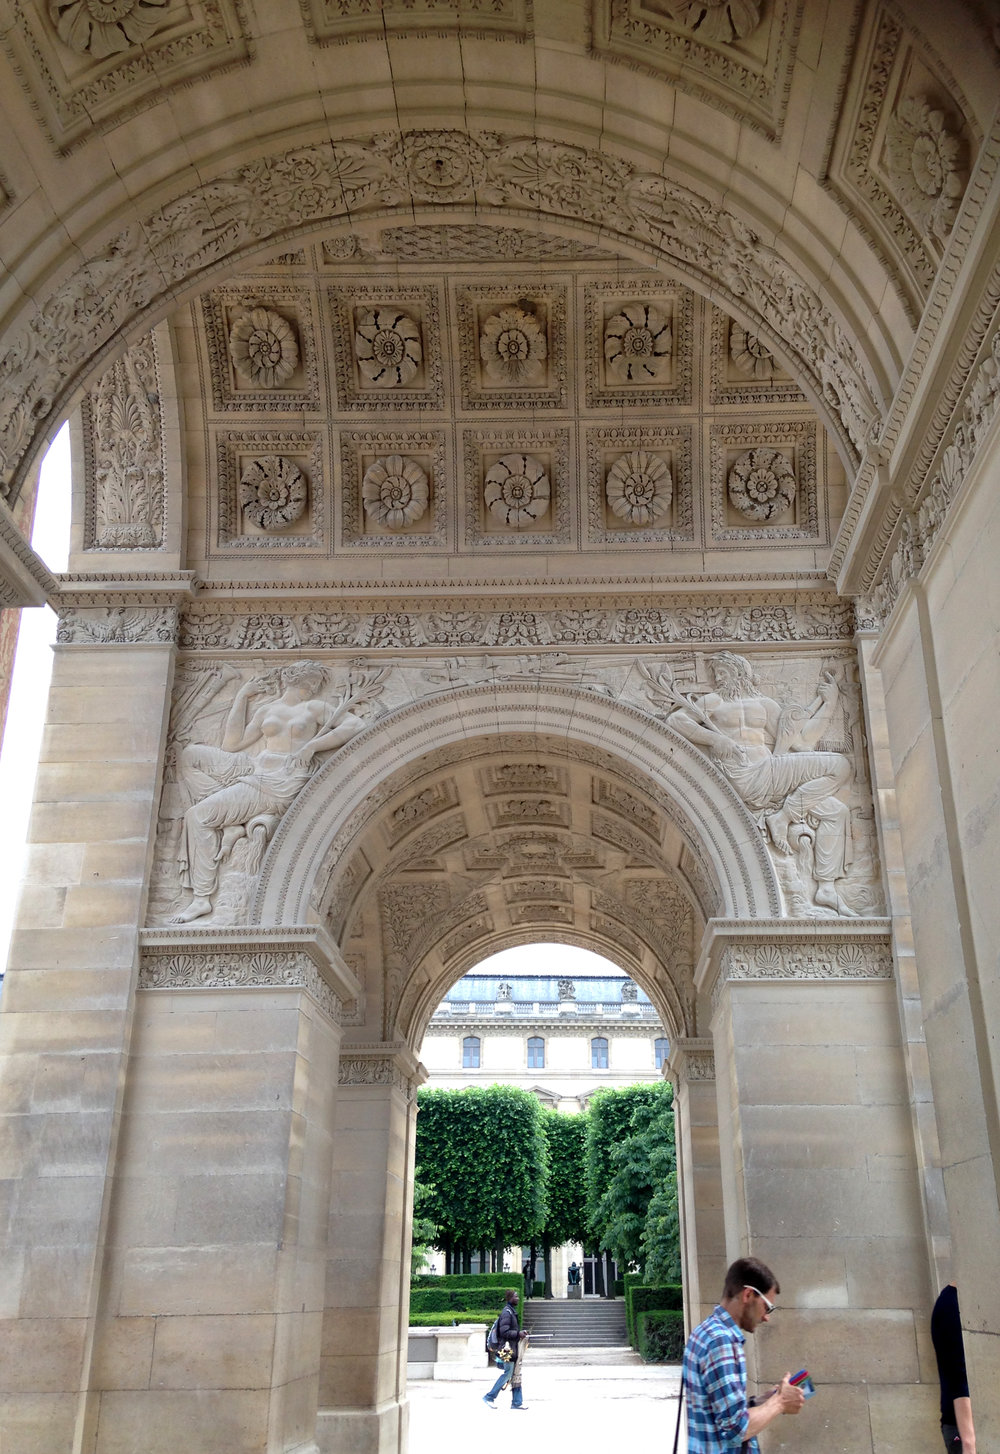 The two images above shows a smaller Arc de Triomphe-like structure that is located at the eastern entrance into the Jardin des Tuileries. It was built by Napoleon de Bonaparte, and is stunning to look at.